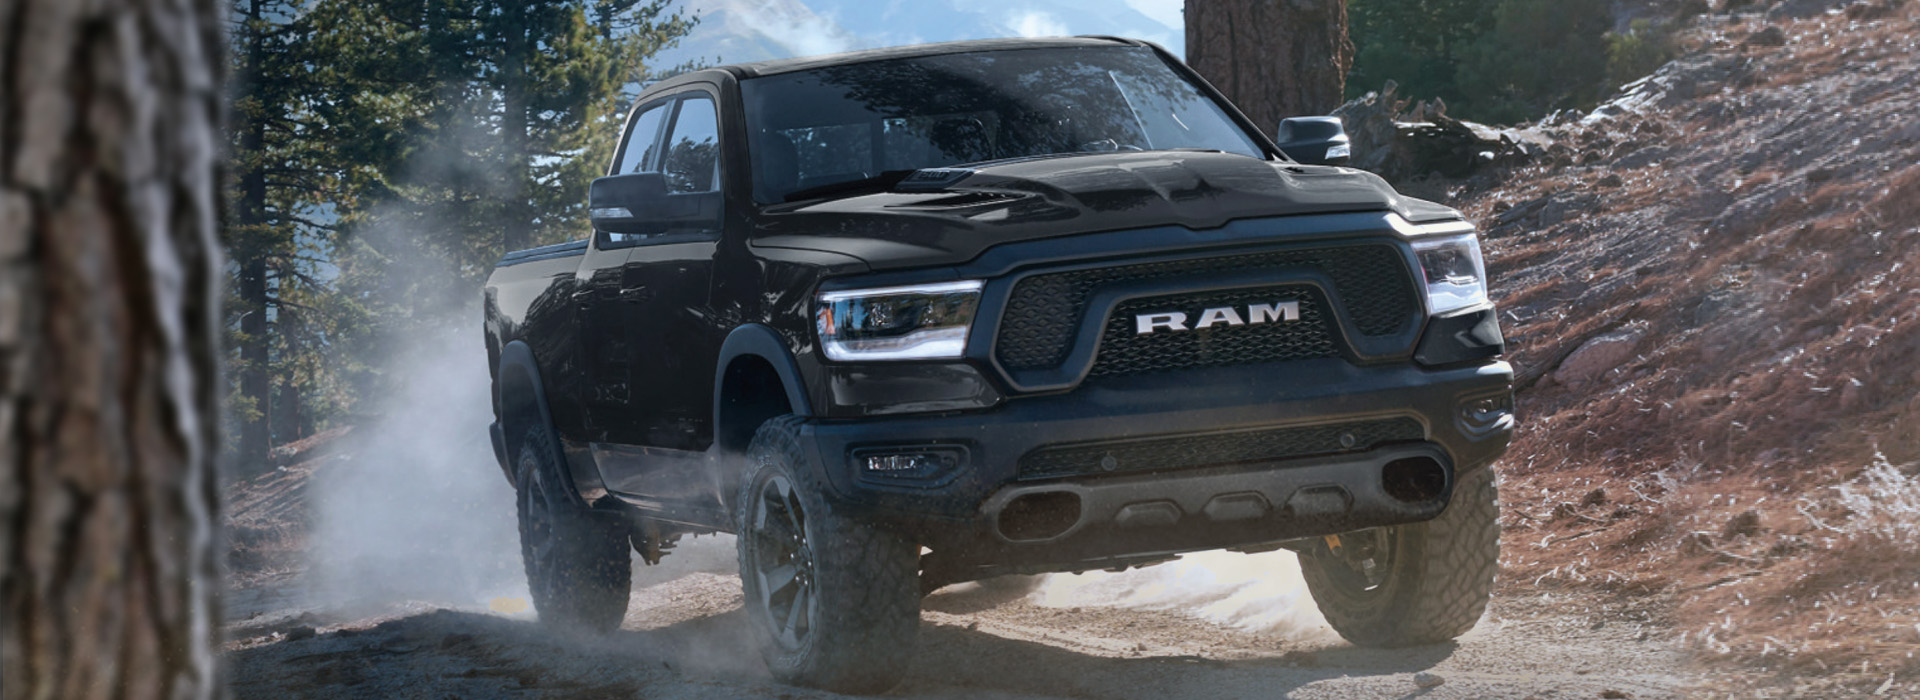 2020 Ram Rebel Black Appearance